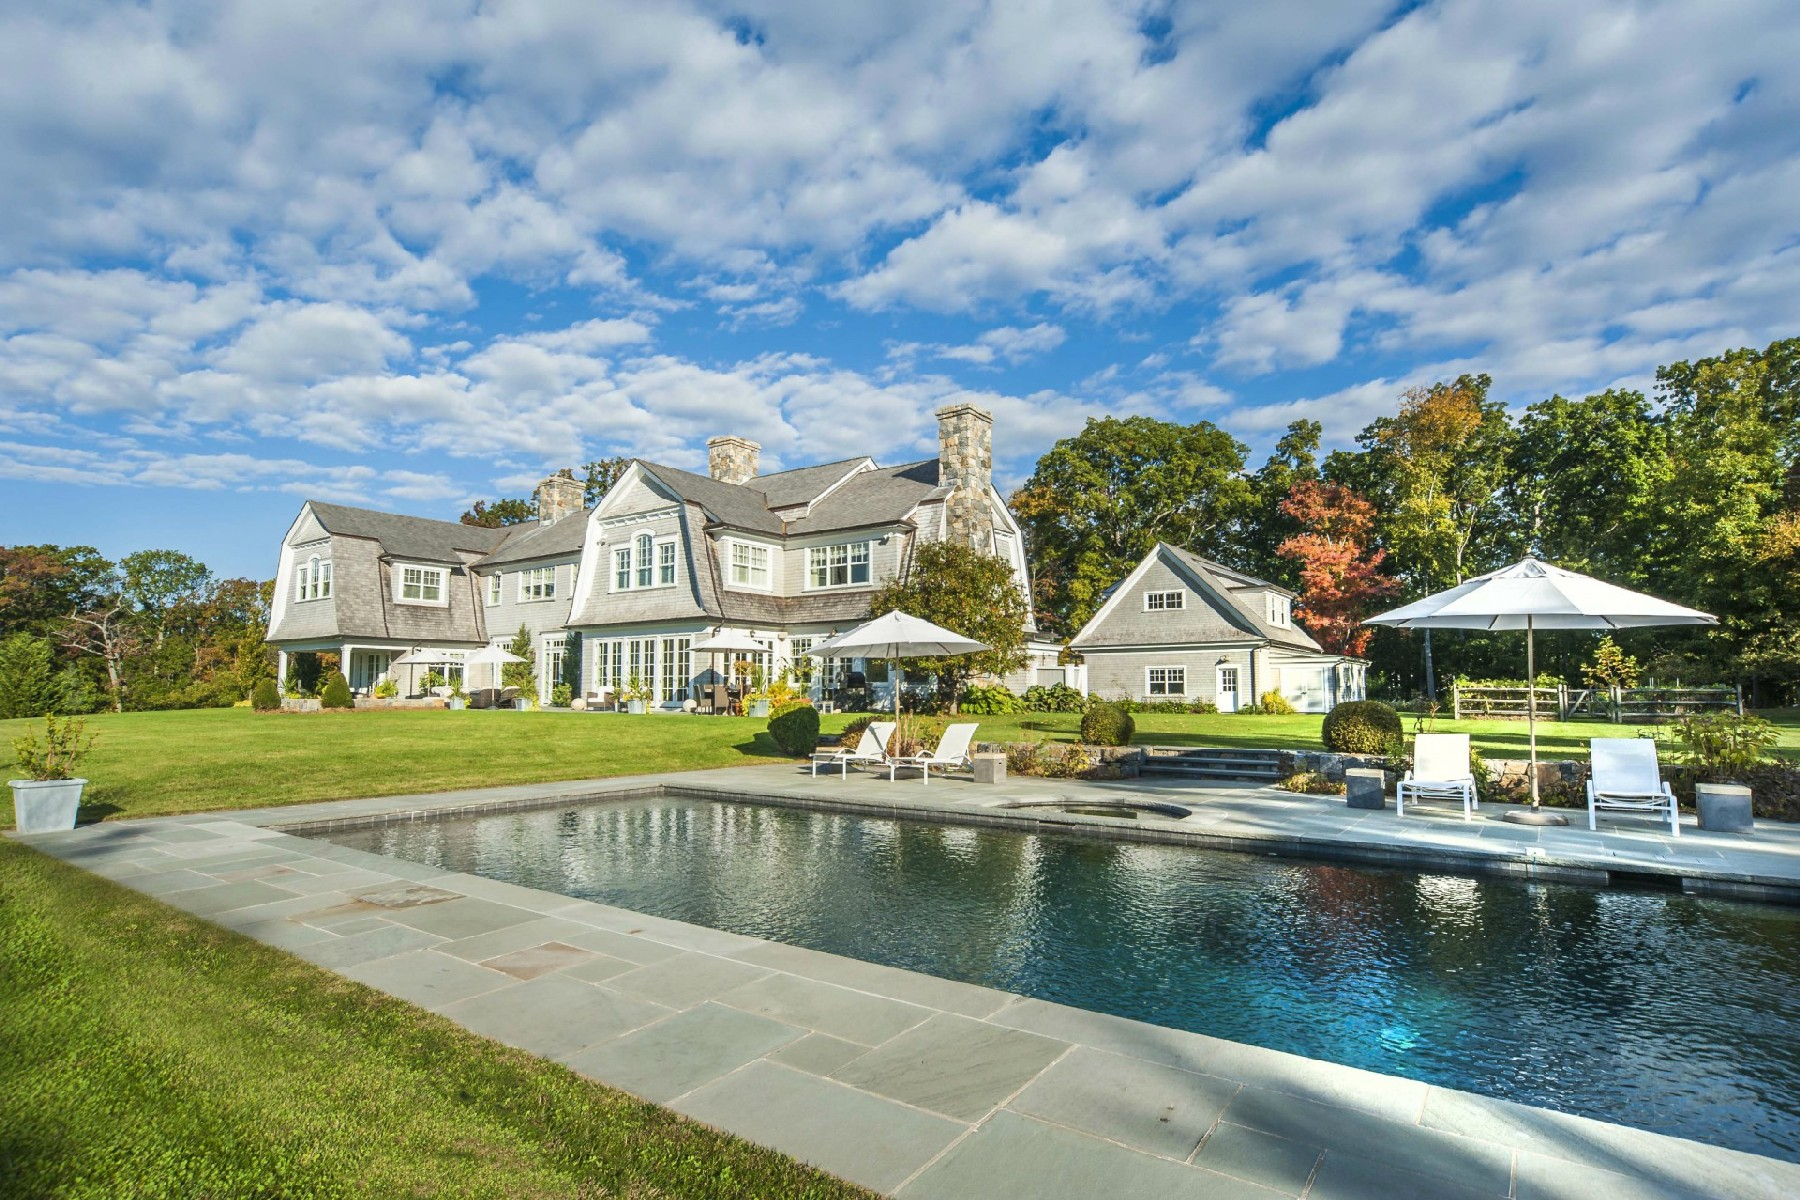 Casa Unifamiliar por un Venta en Magnificent Estate on 7.1 Acre Island 20 Juniper Road Darien, Connecticut, 06820 Estados Unidos